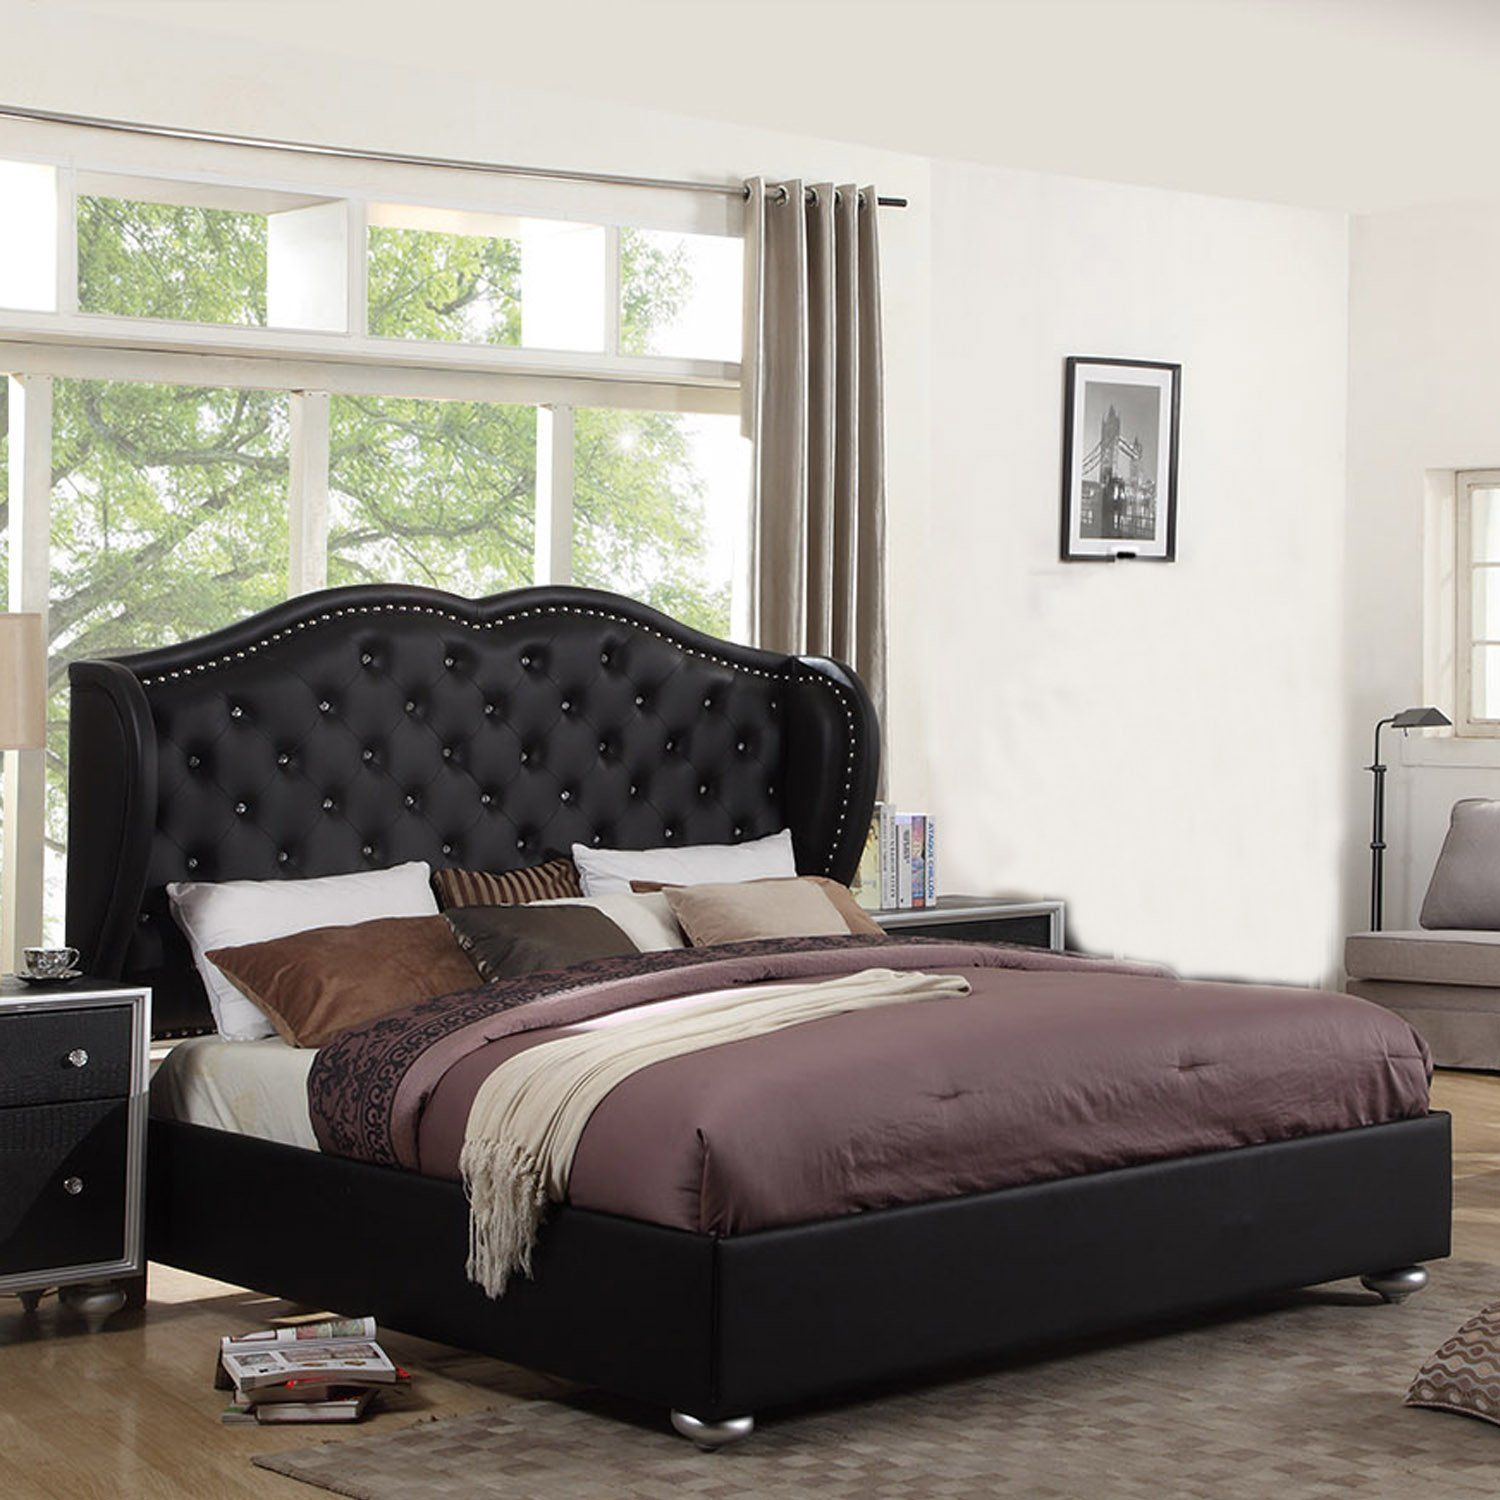 Best Ufe Courtney Black Platform Bed Diamond Tufting With 640 x 480